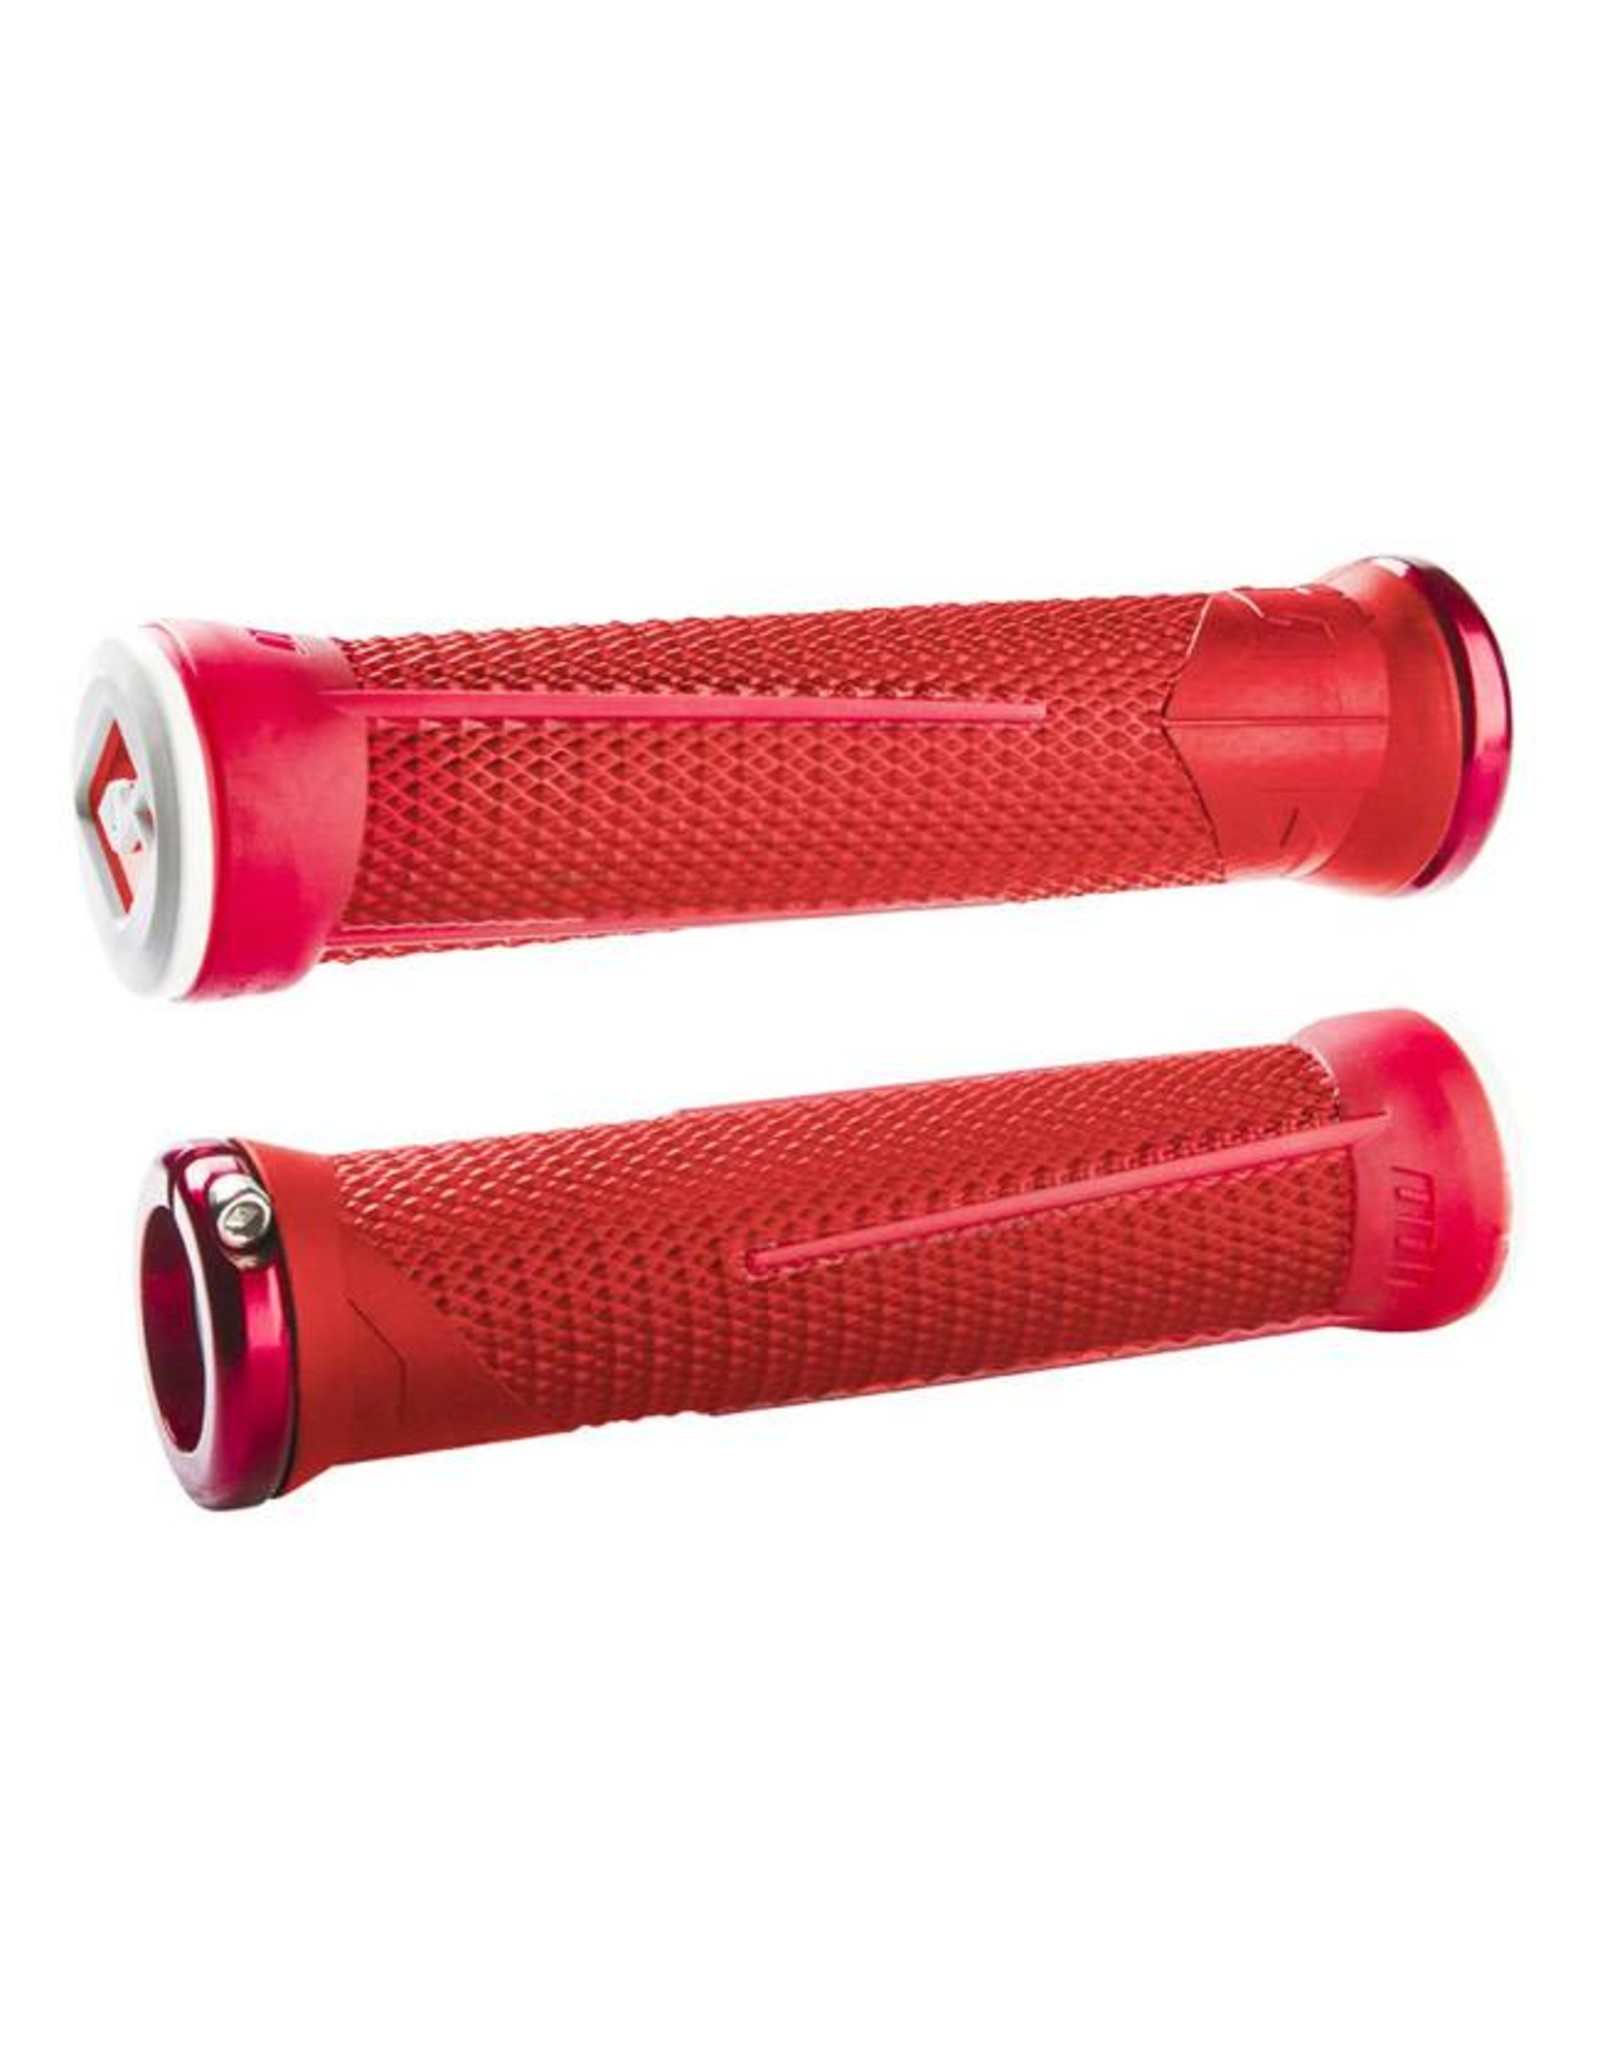 ODI ODI AG1 Lock-On Grips Aaron Gwin 135mm Red/Fire Red